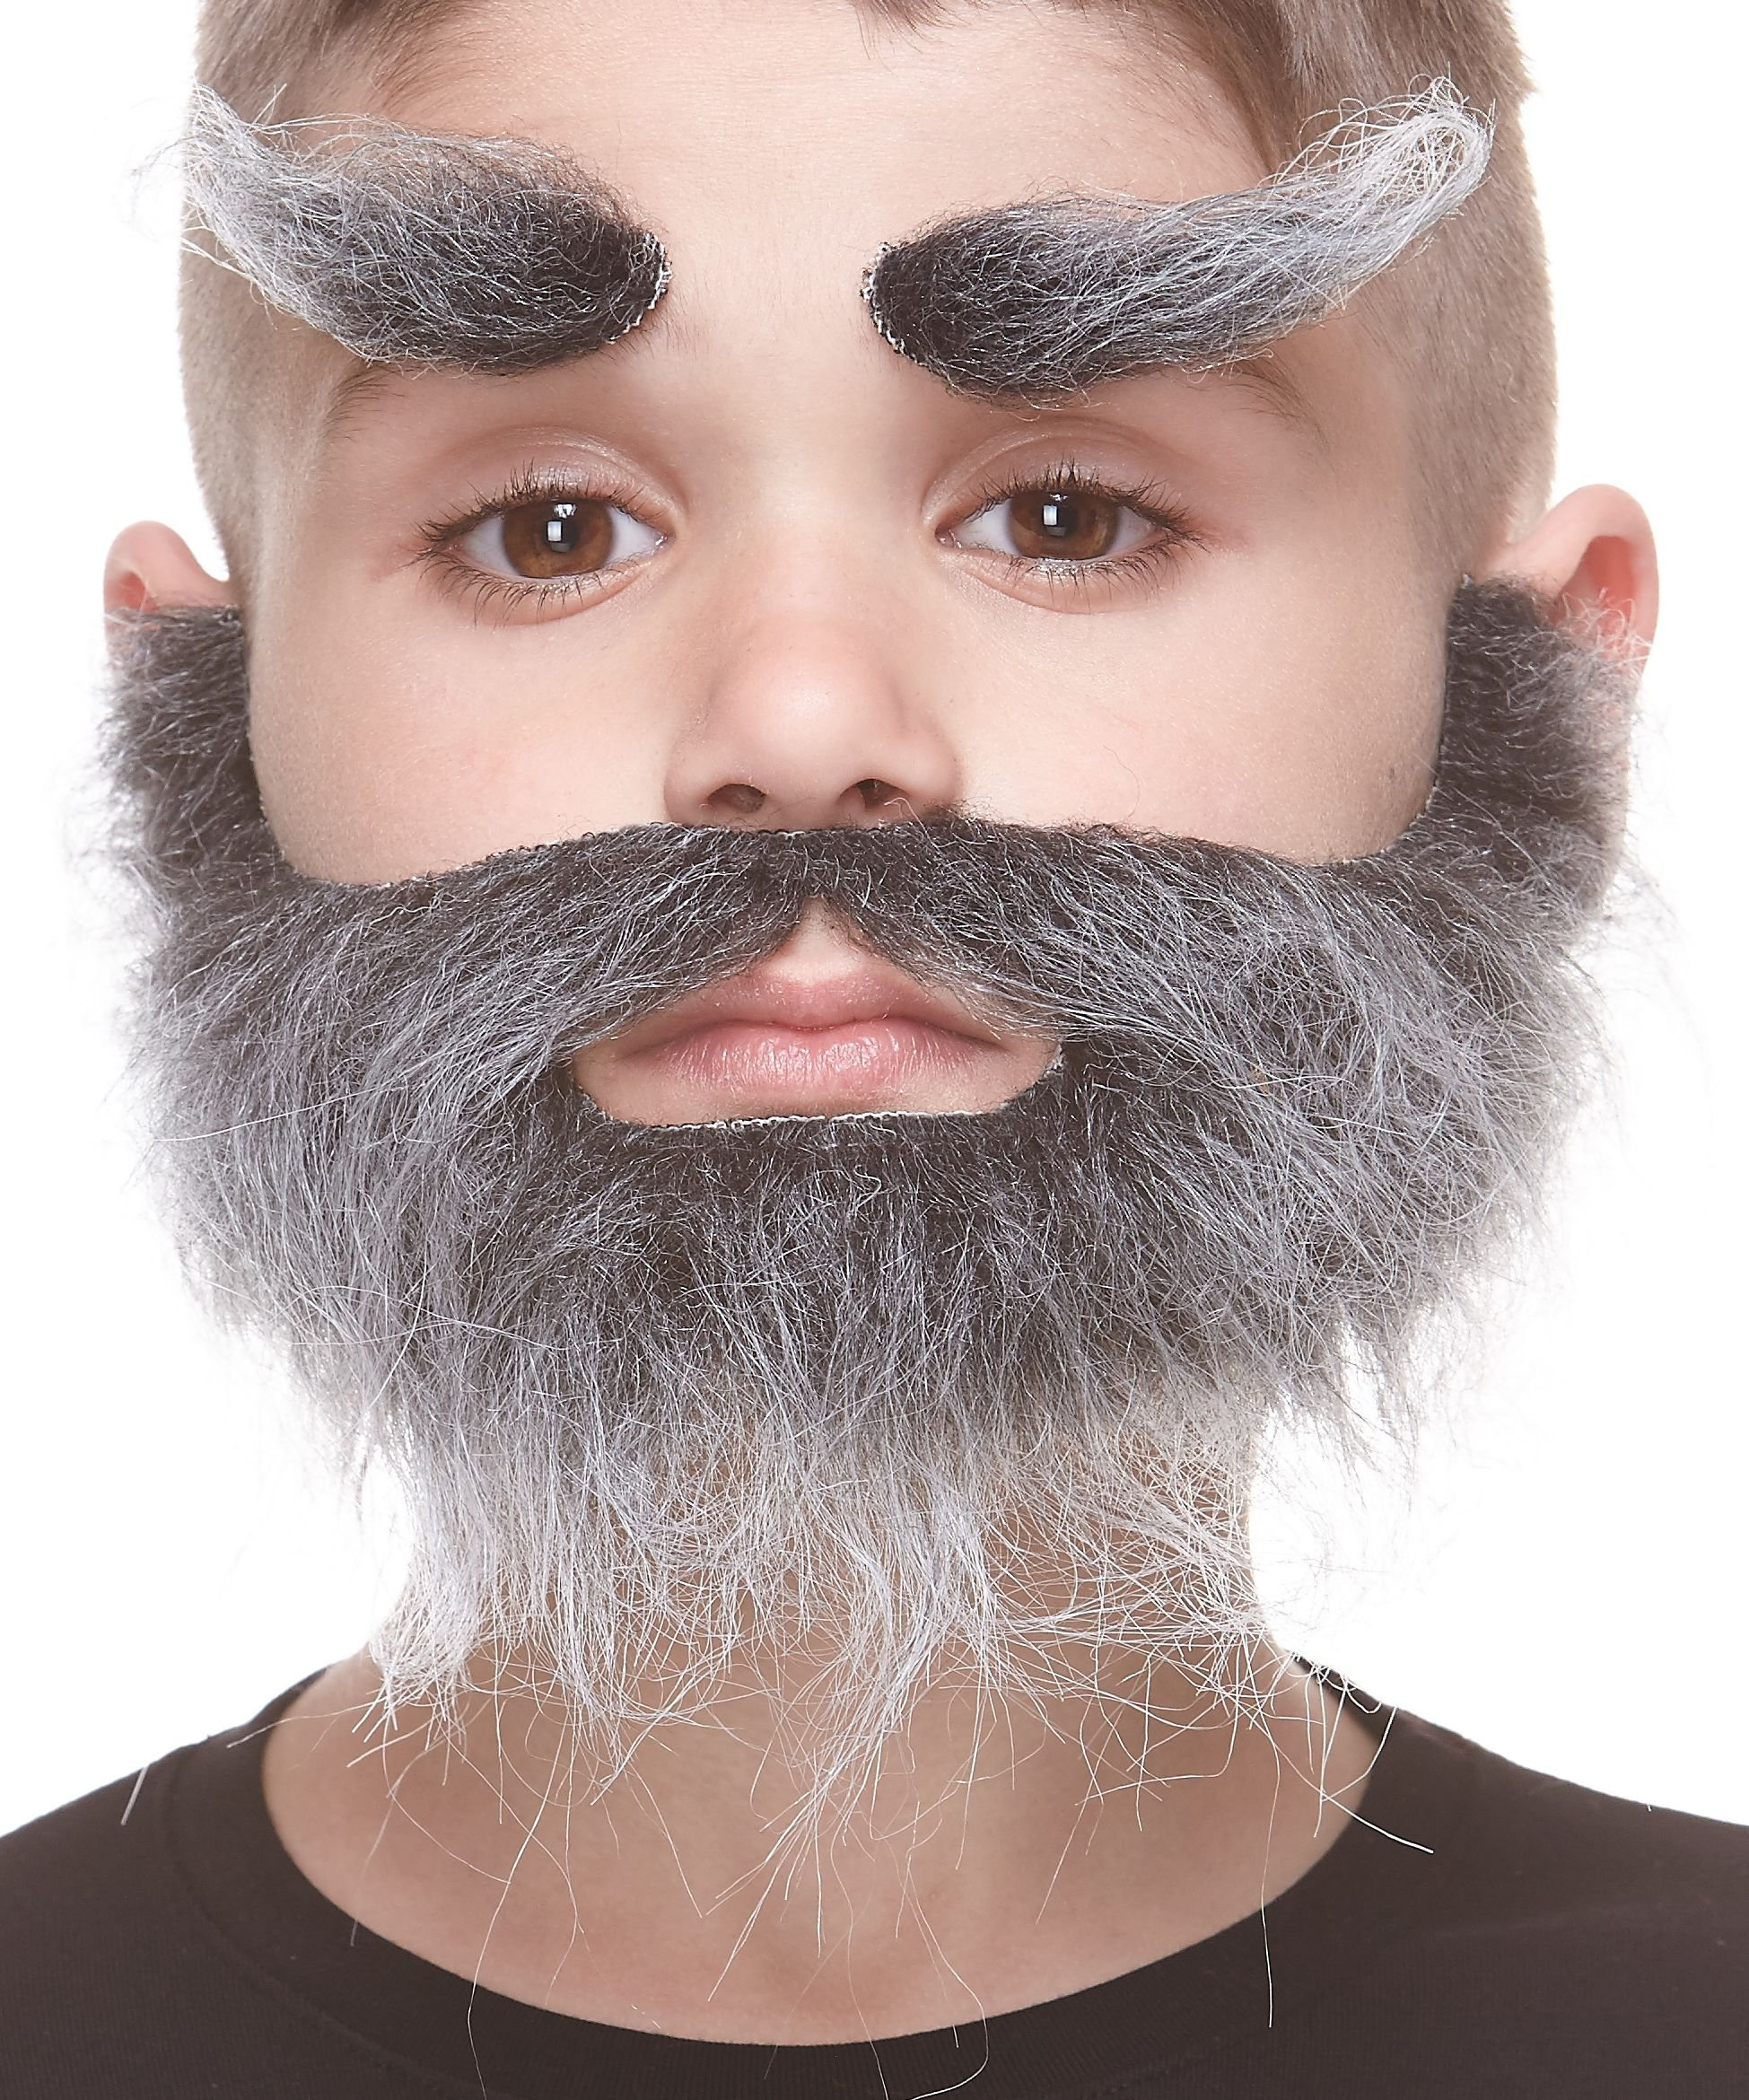 Mustaches Self Adhesive, Novelty, Fake, Small, Realistic Traper Beard, and Eyebrows, Salt and Pepper Color